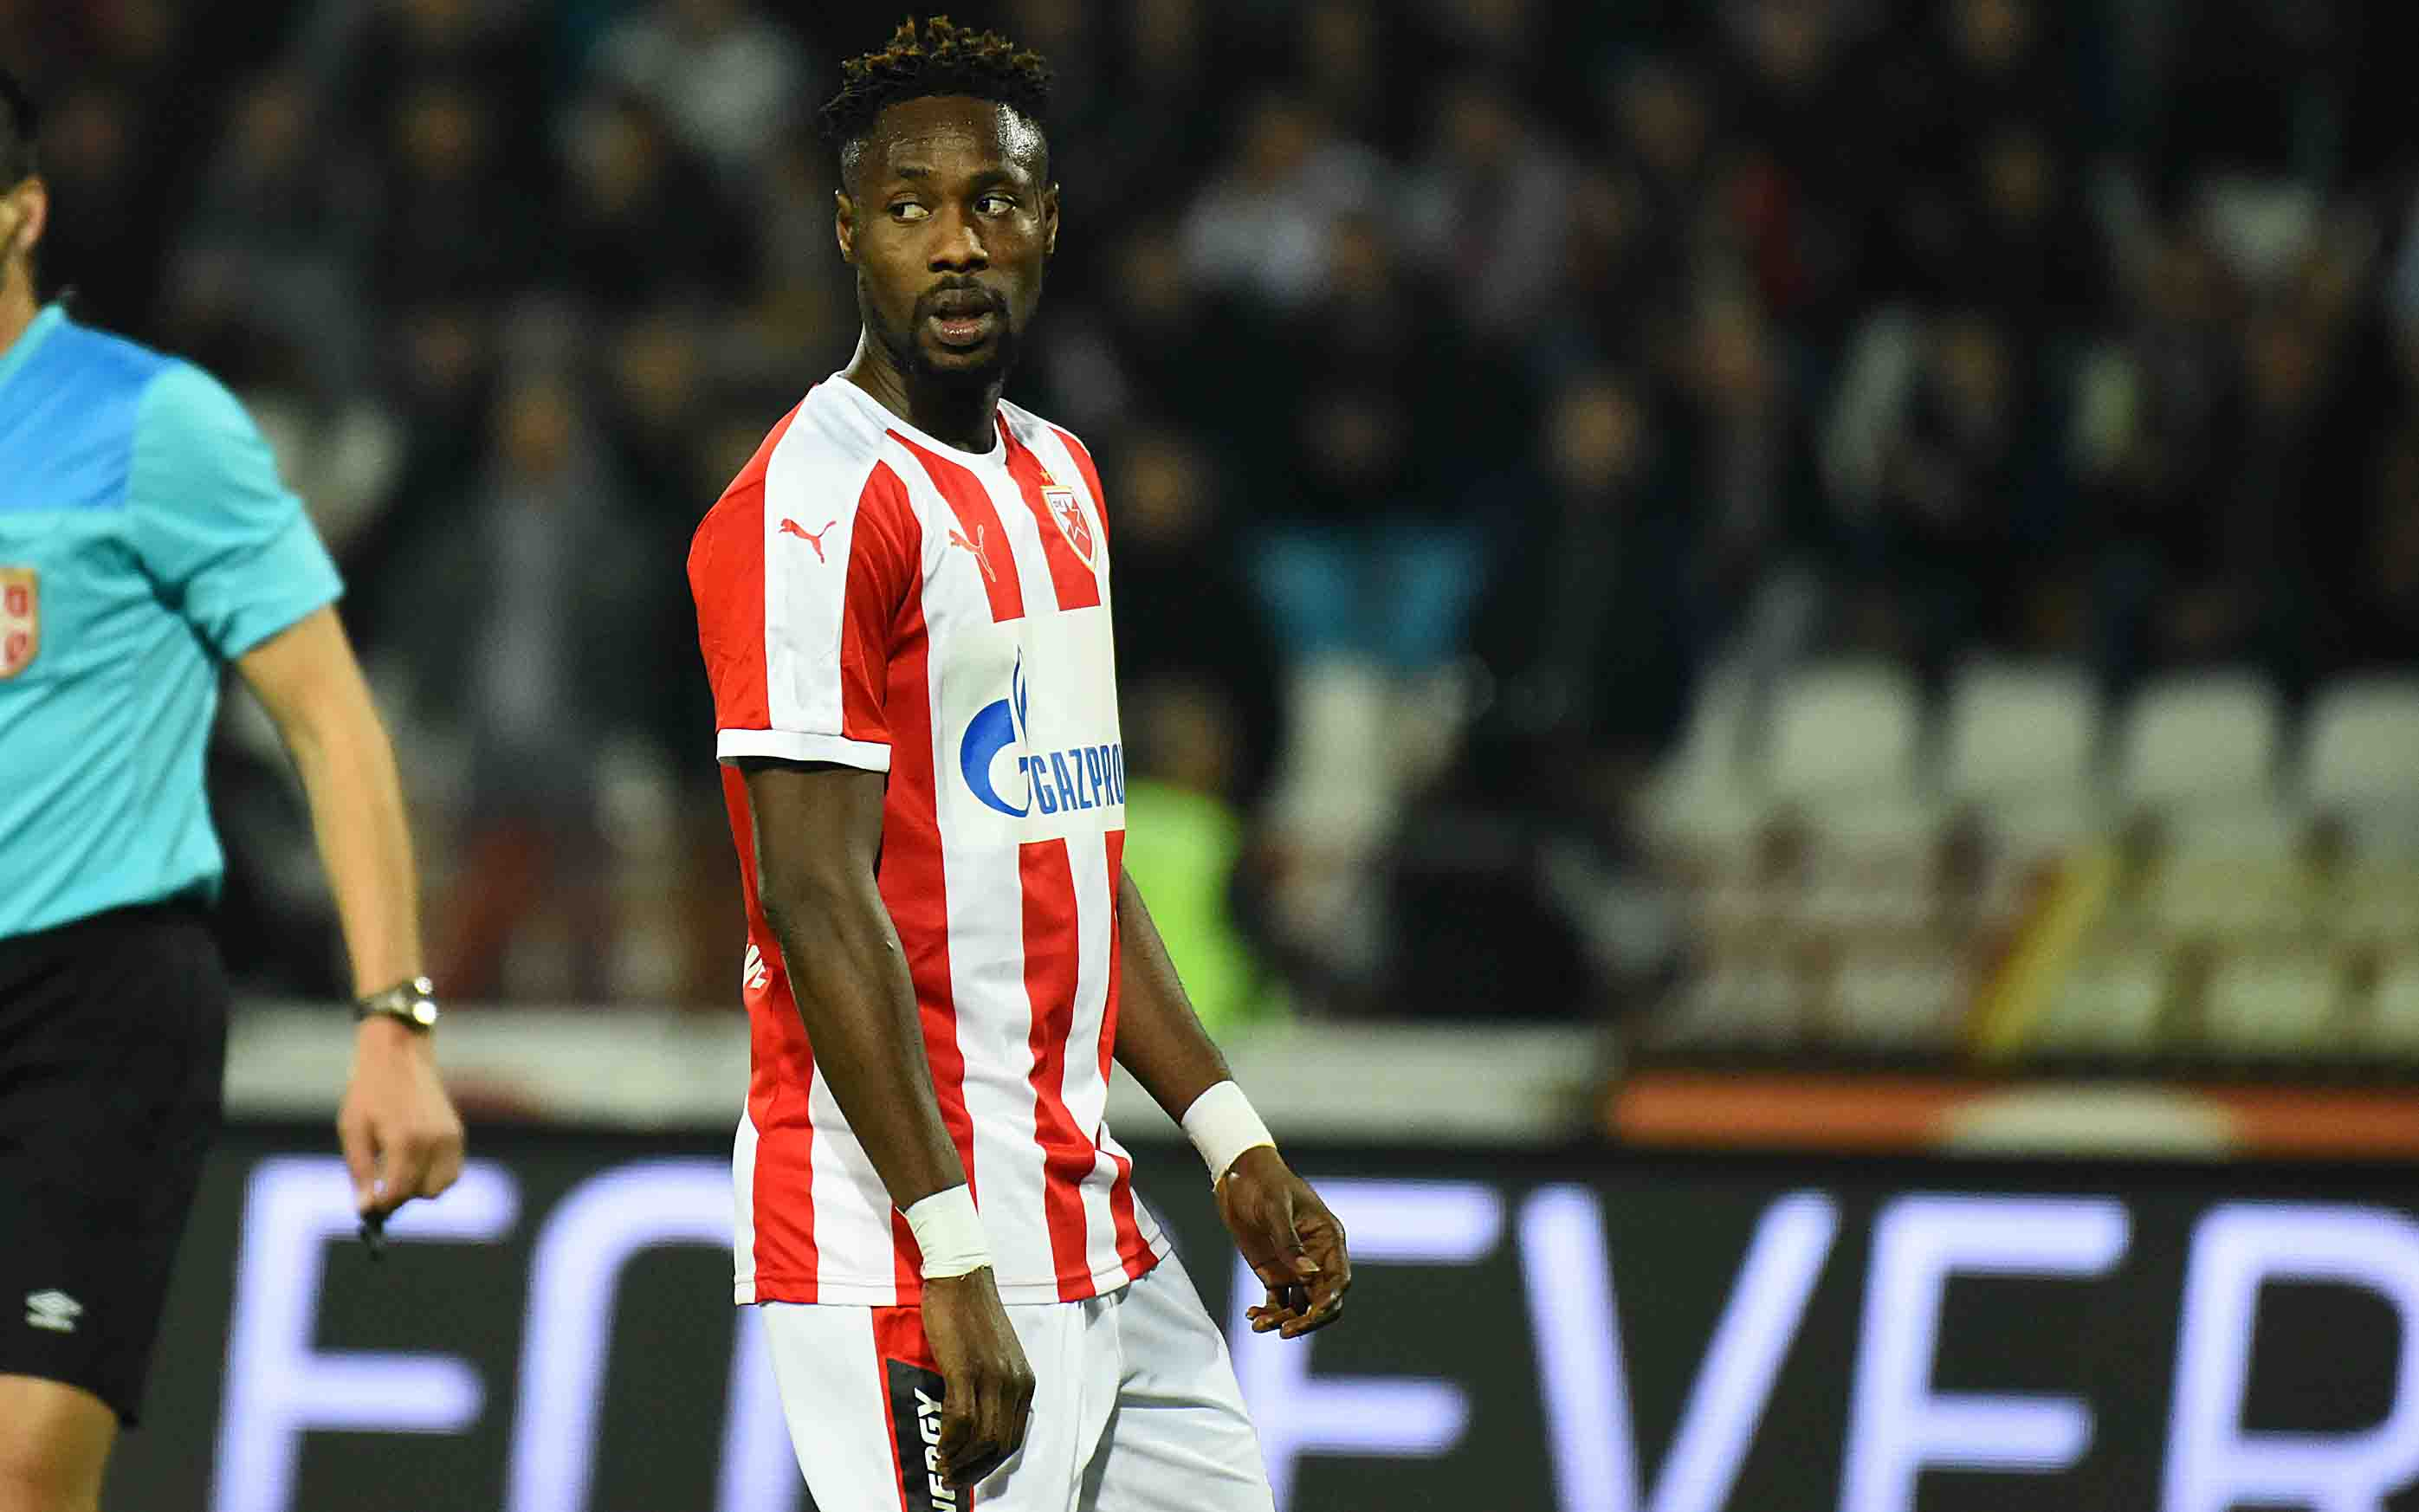 EXCLUSIVE: NINE clubs submit bids for striker Richmond Boakye-Yiadom